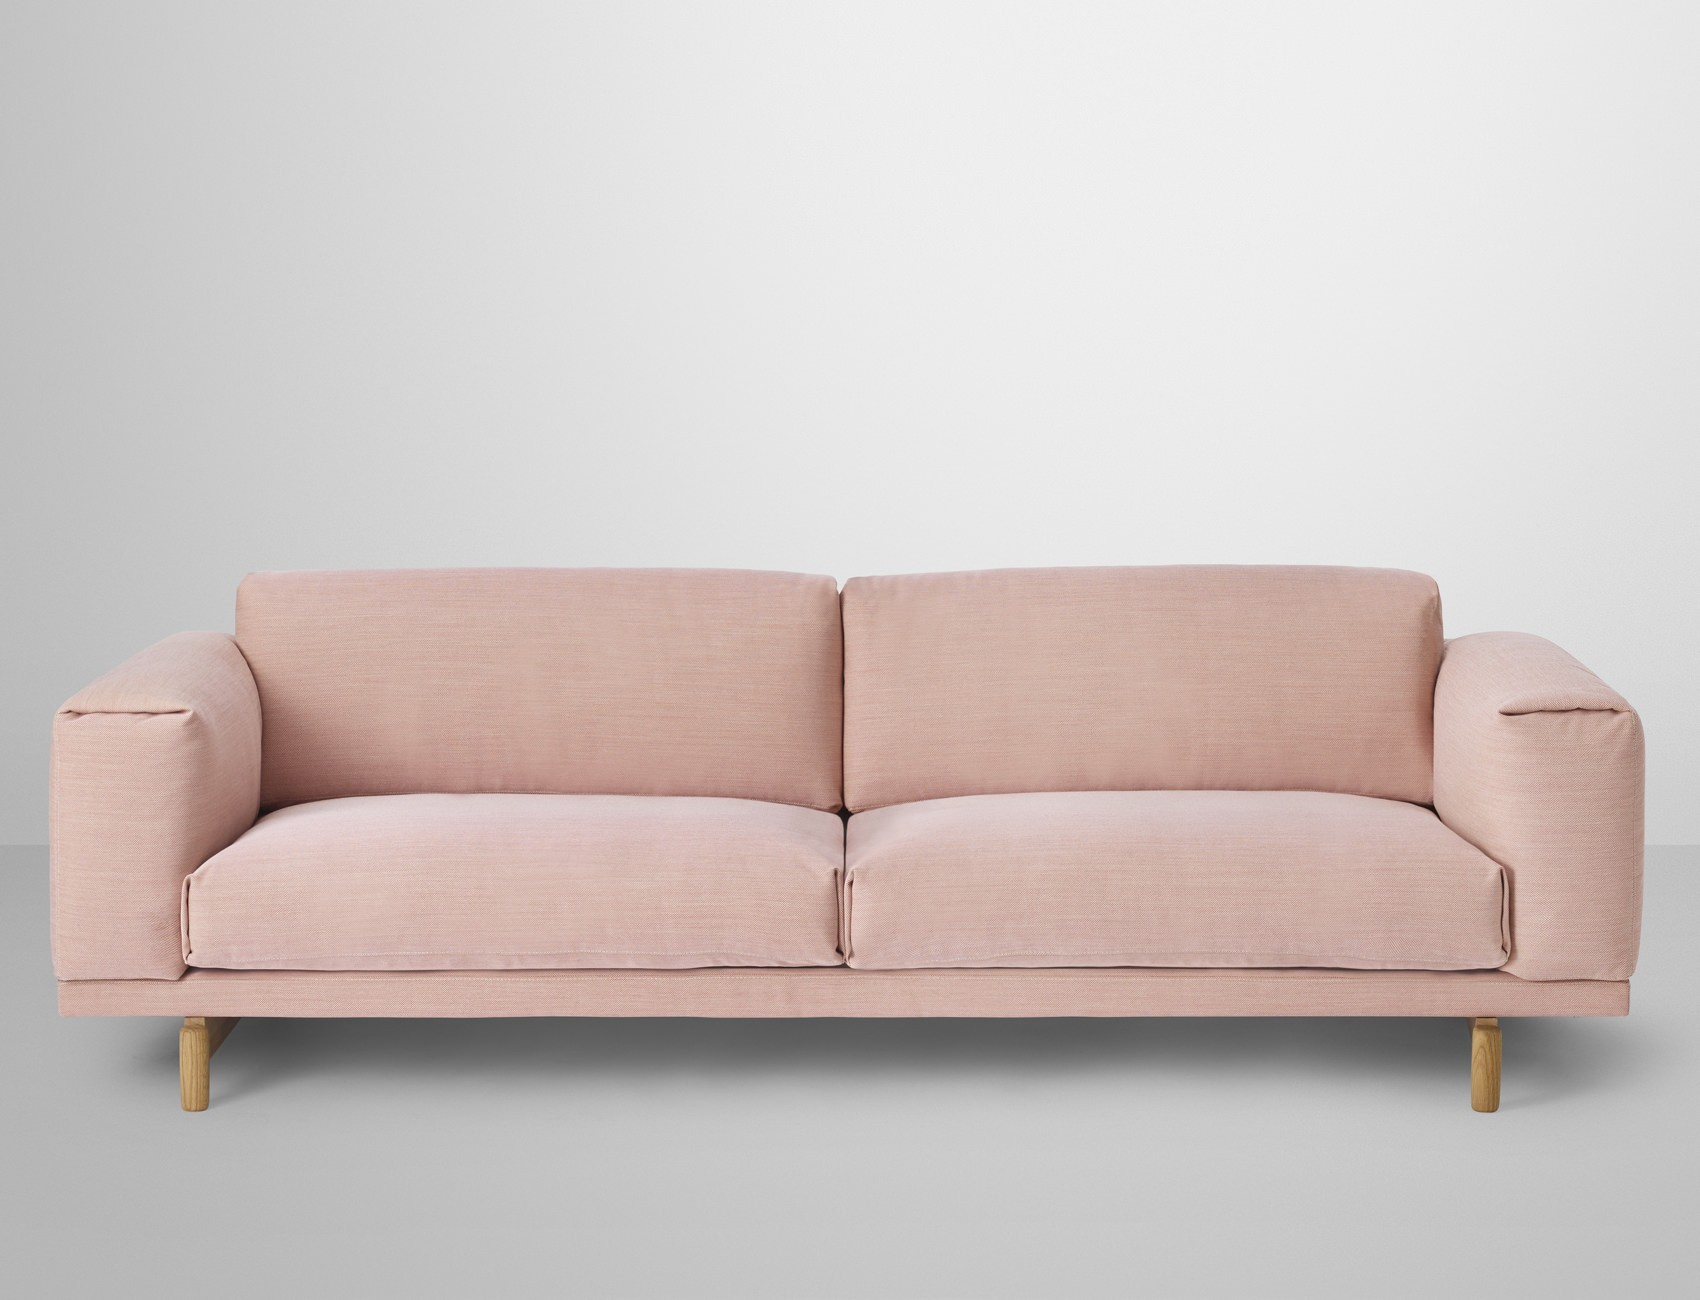 Sofa Funktion Muuto Rest 3 Seater Sofa Funktion Alley